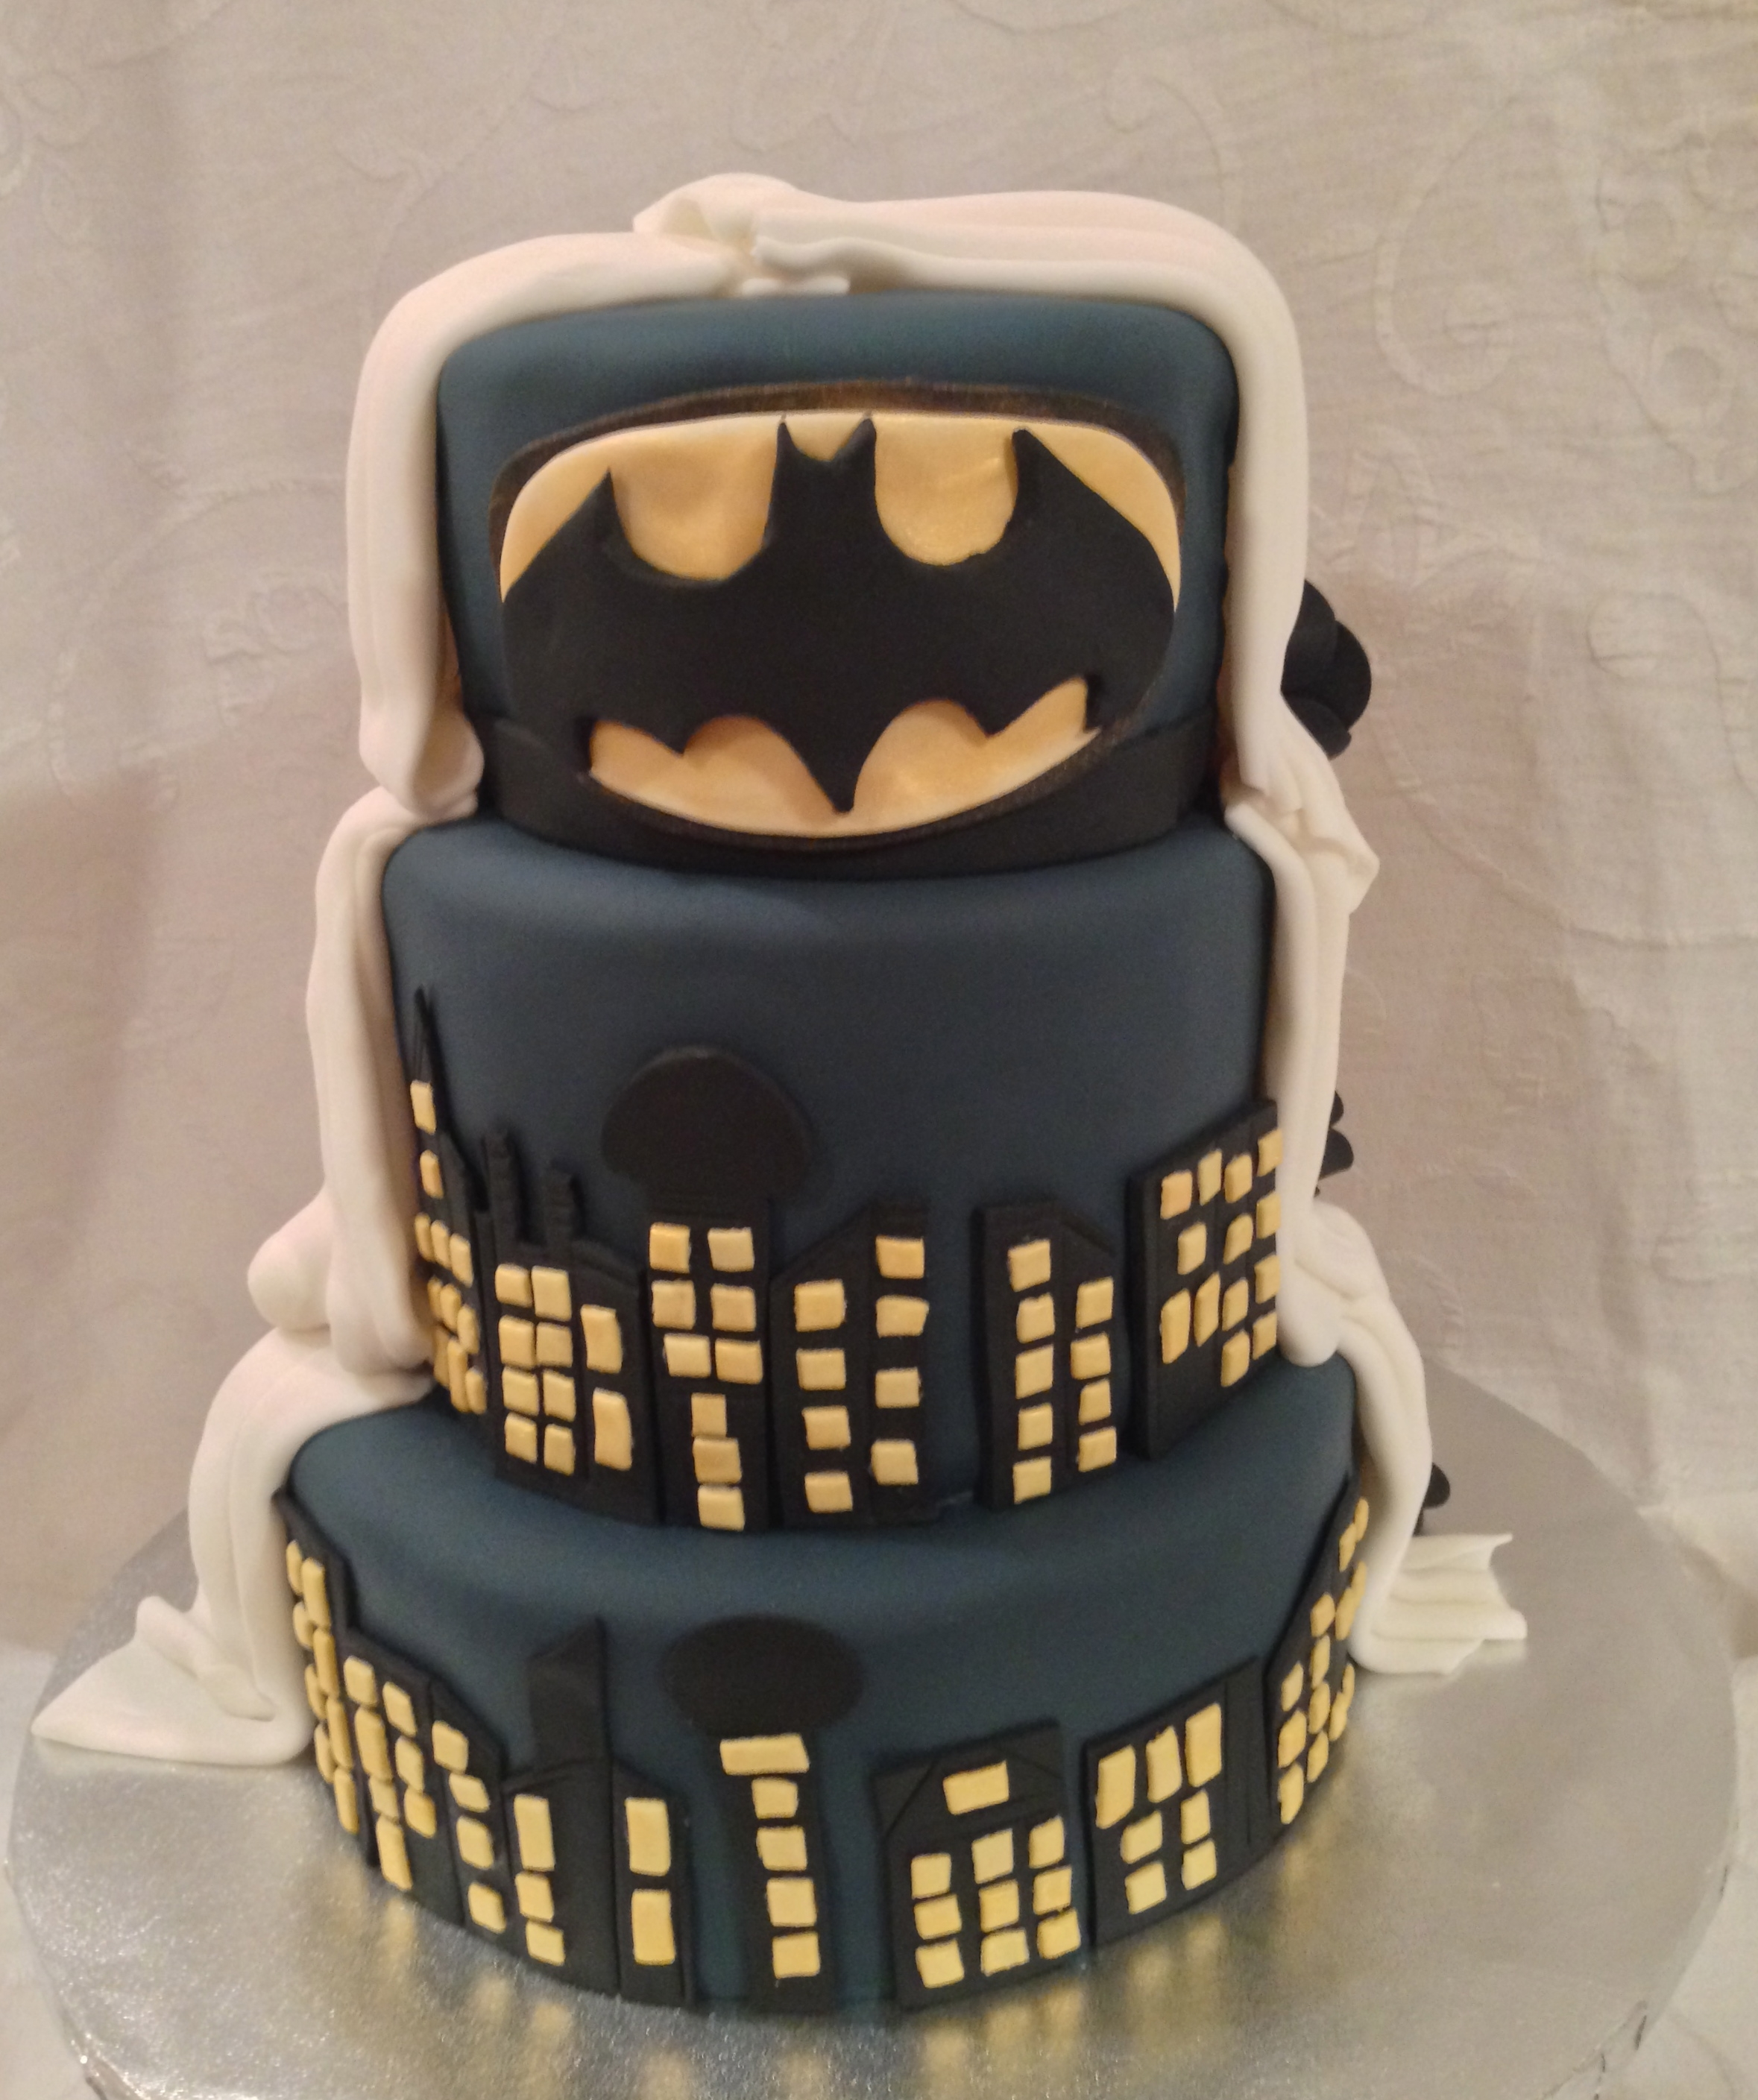 Smothery Batman Wedding Cake Batman Wedding Cake Batman Wedding Cake Per 45011 Batman Wedding Cake Per Bride wedding cake Batman Wedding Cake